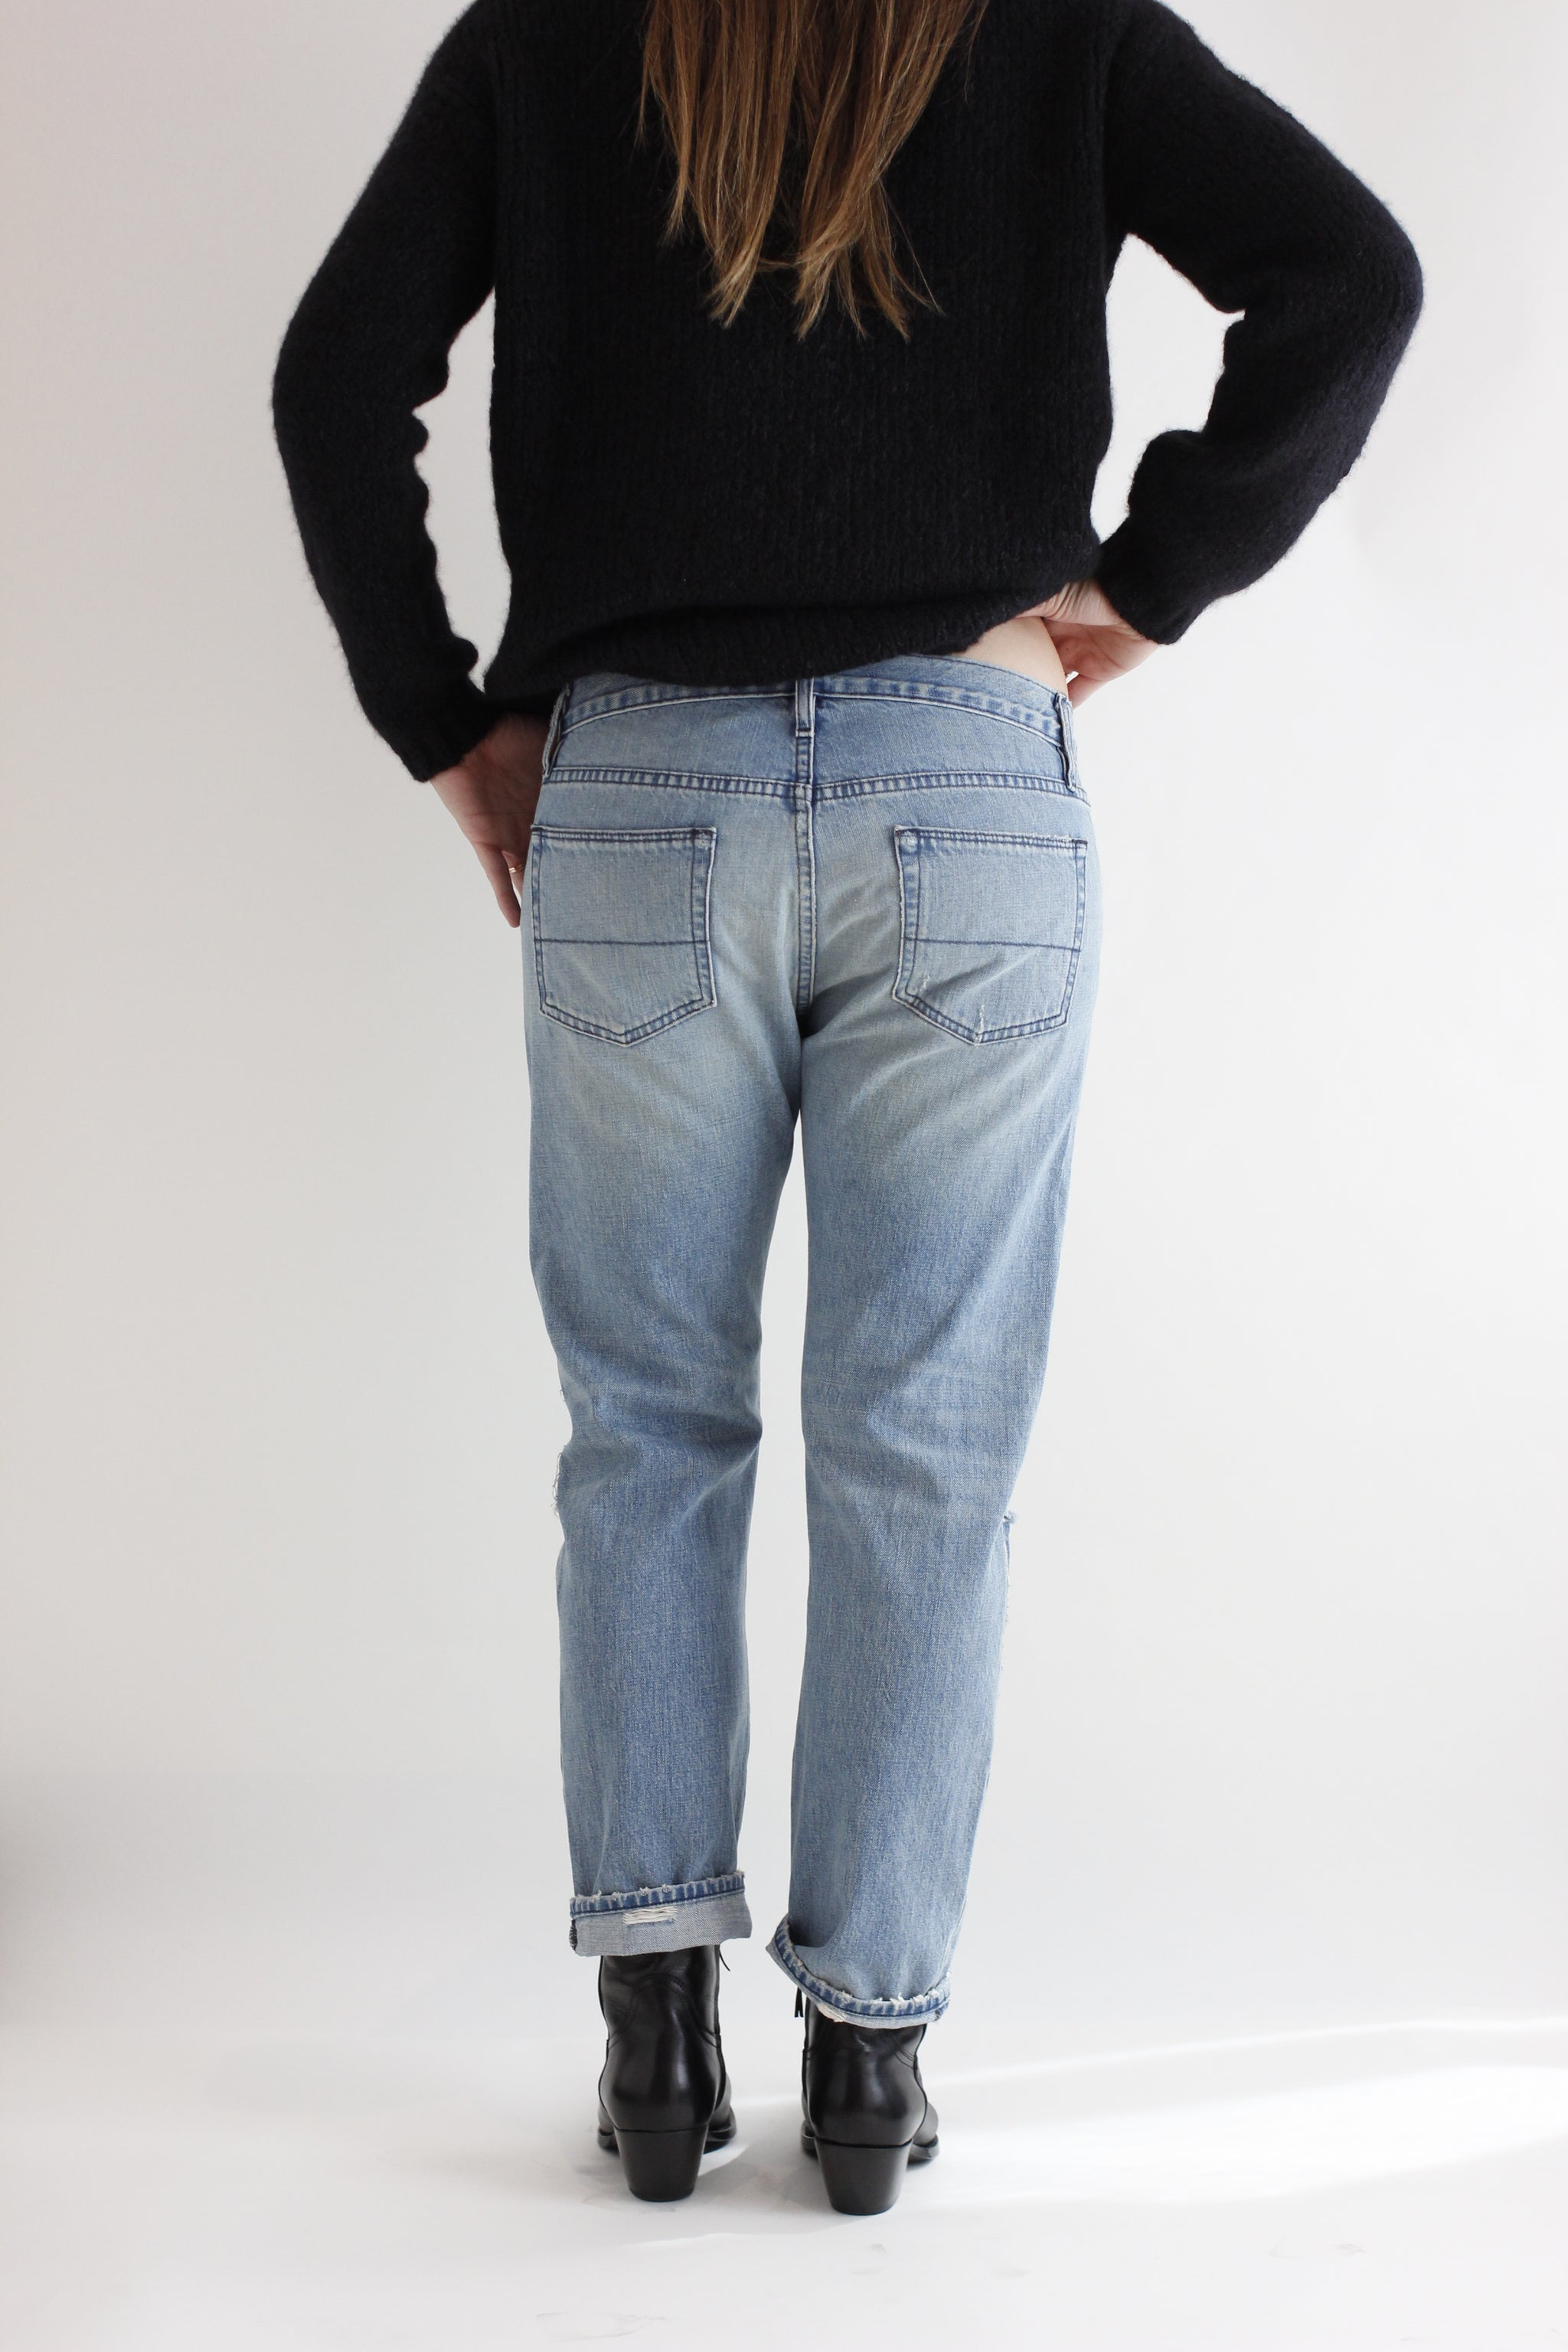 NSF Beck Slouch Jeans - Habits Jackson Hole